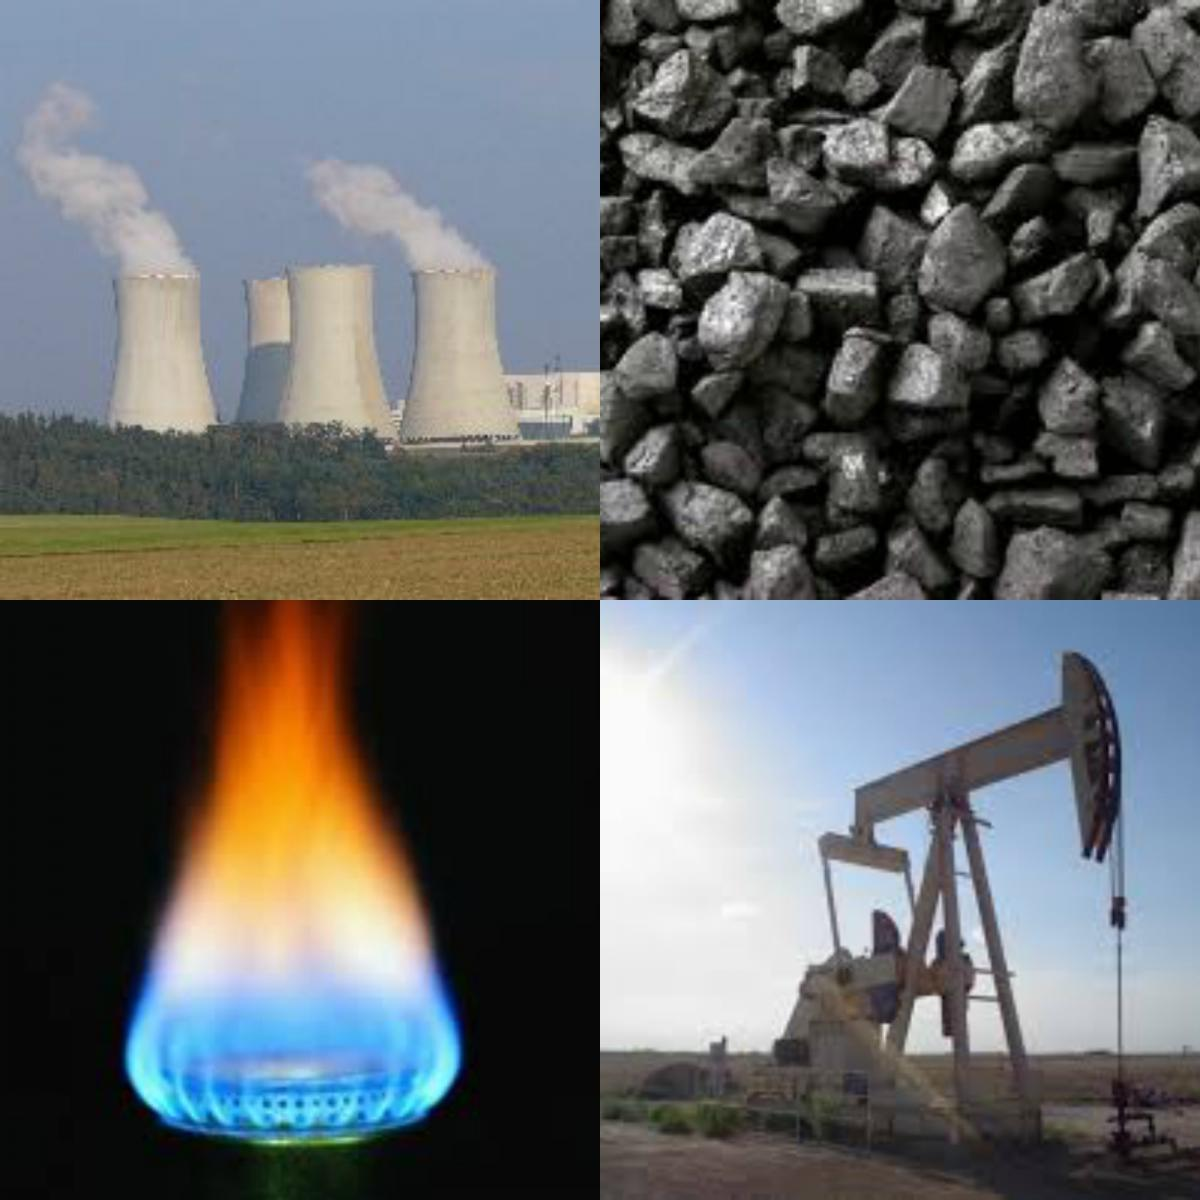 fossil fuels one of the biggest sources of energy in the planet The fossil fuels are coal, oil and natural gas they are fuels because they release heat energy when they are burned they are fossil fuels because they were formed from the remains of living organisms millions of years ago about three-quarters of the electricity generated in the uk comes from.